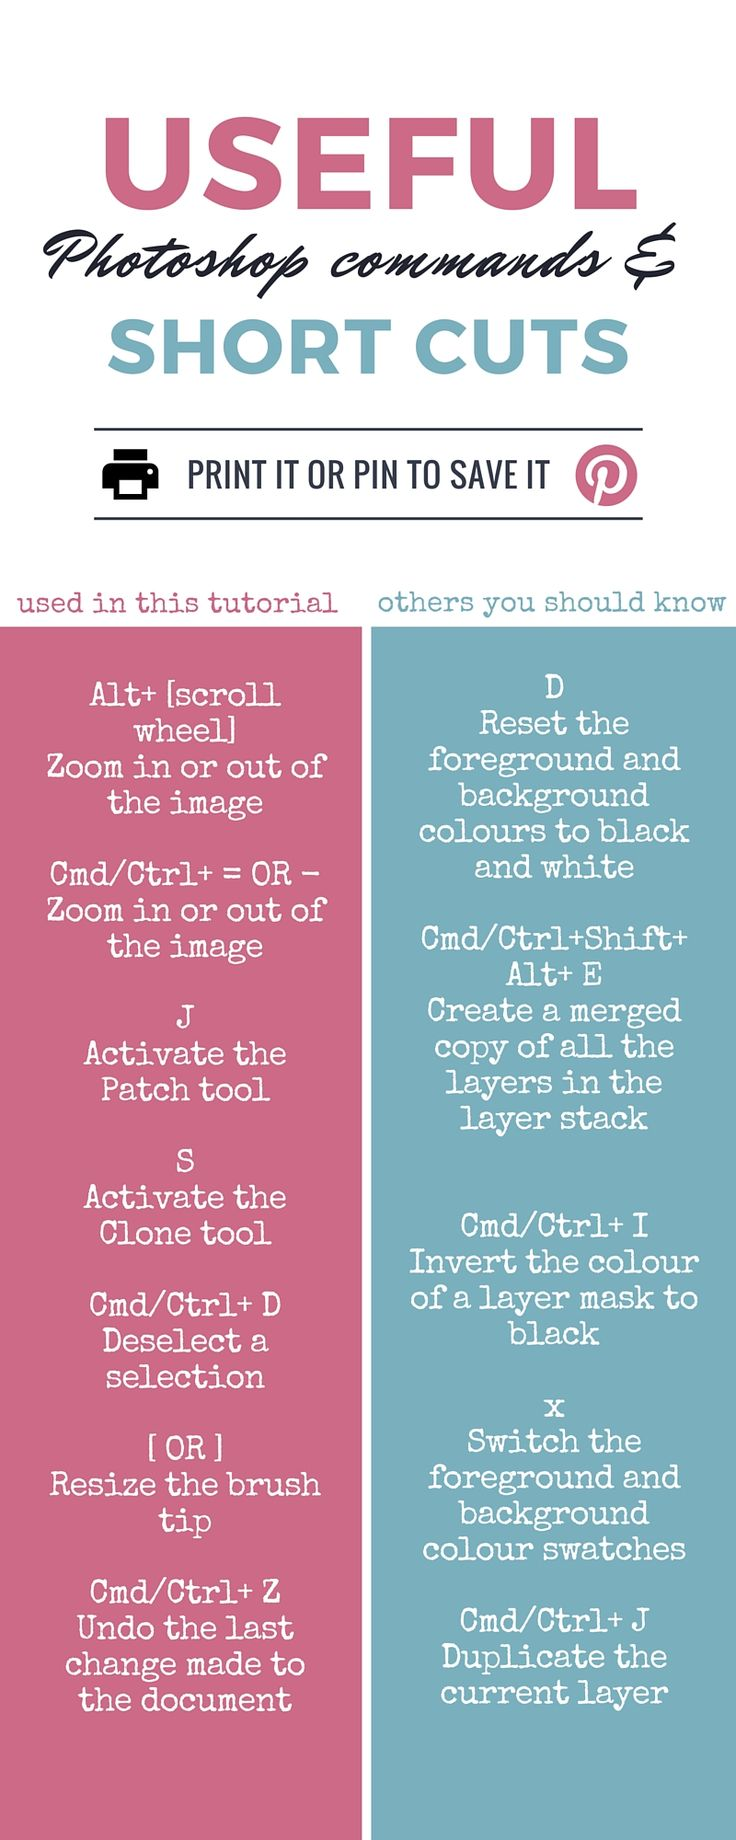 cheat-sheet-photoshop-shortcuts. from the blog post: click to learn about leash removal. dog photography / pet photograph / photo editing tutorial / photography tips video